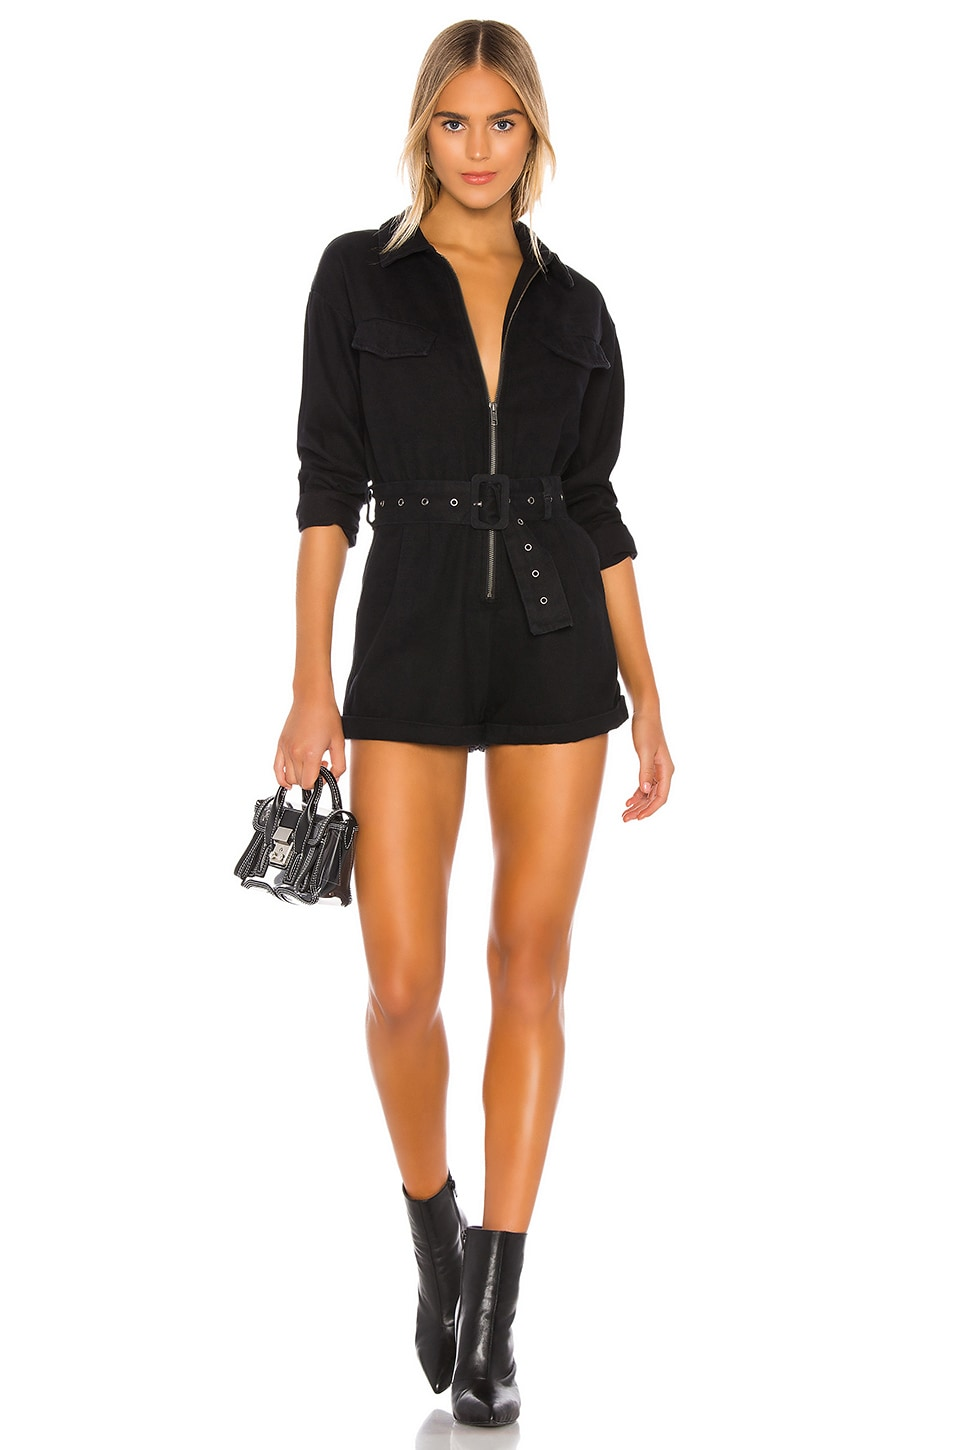 Lovers + Friends Ryland Romper in Black